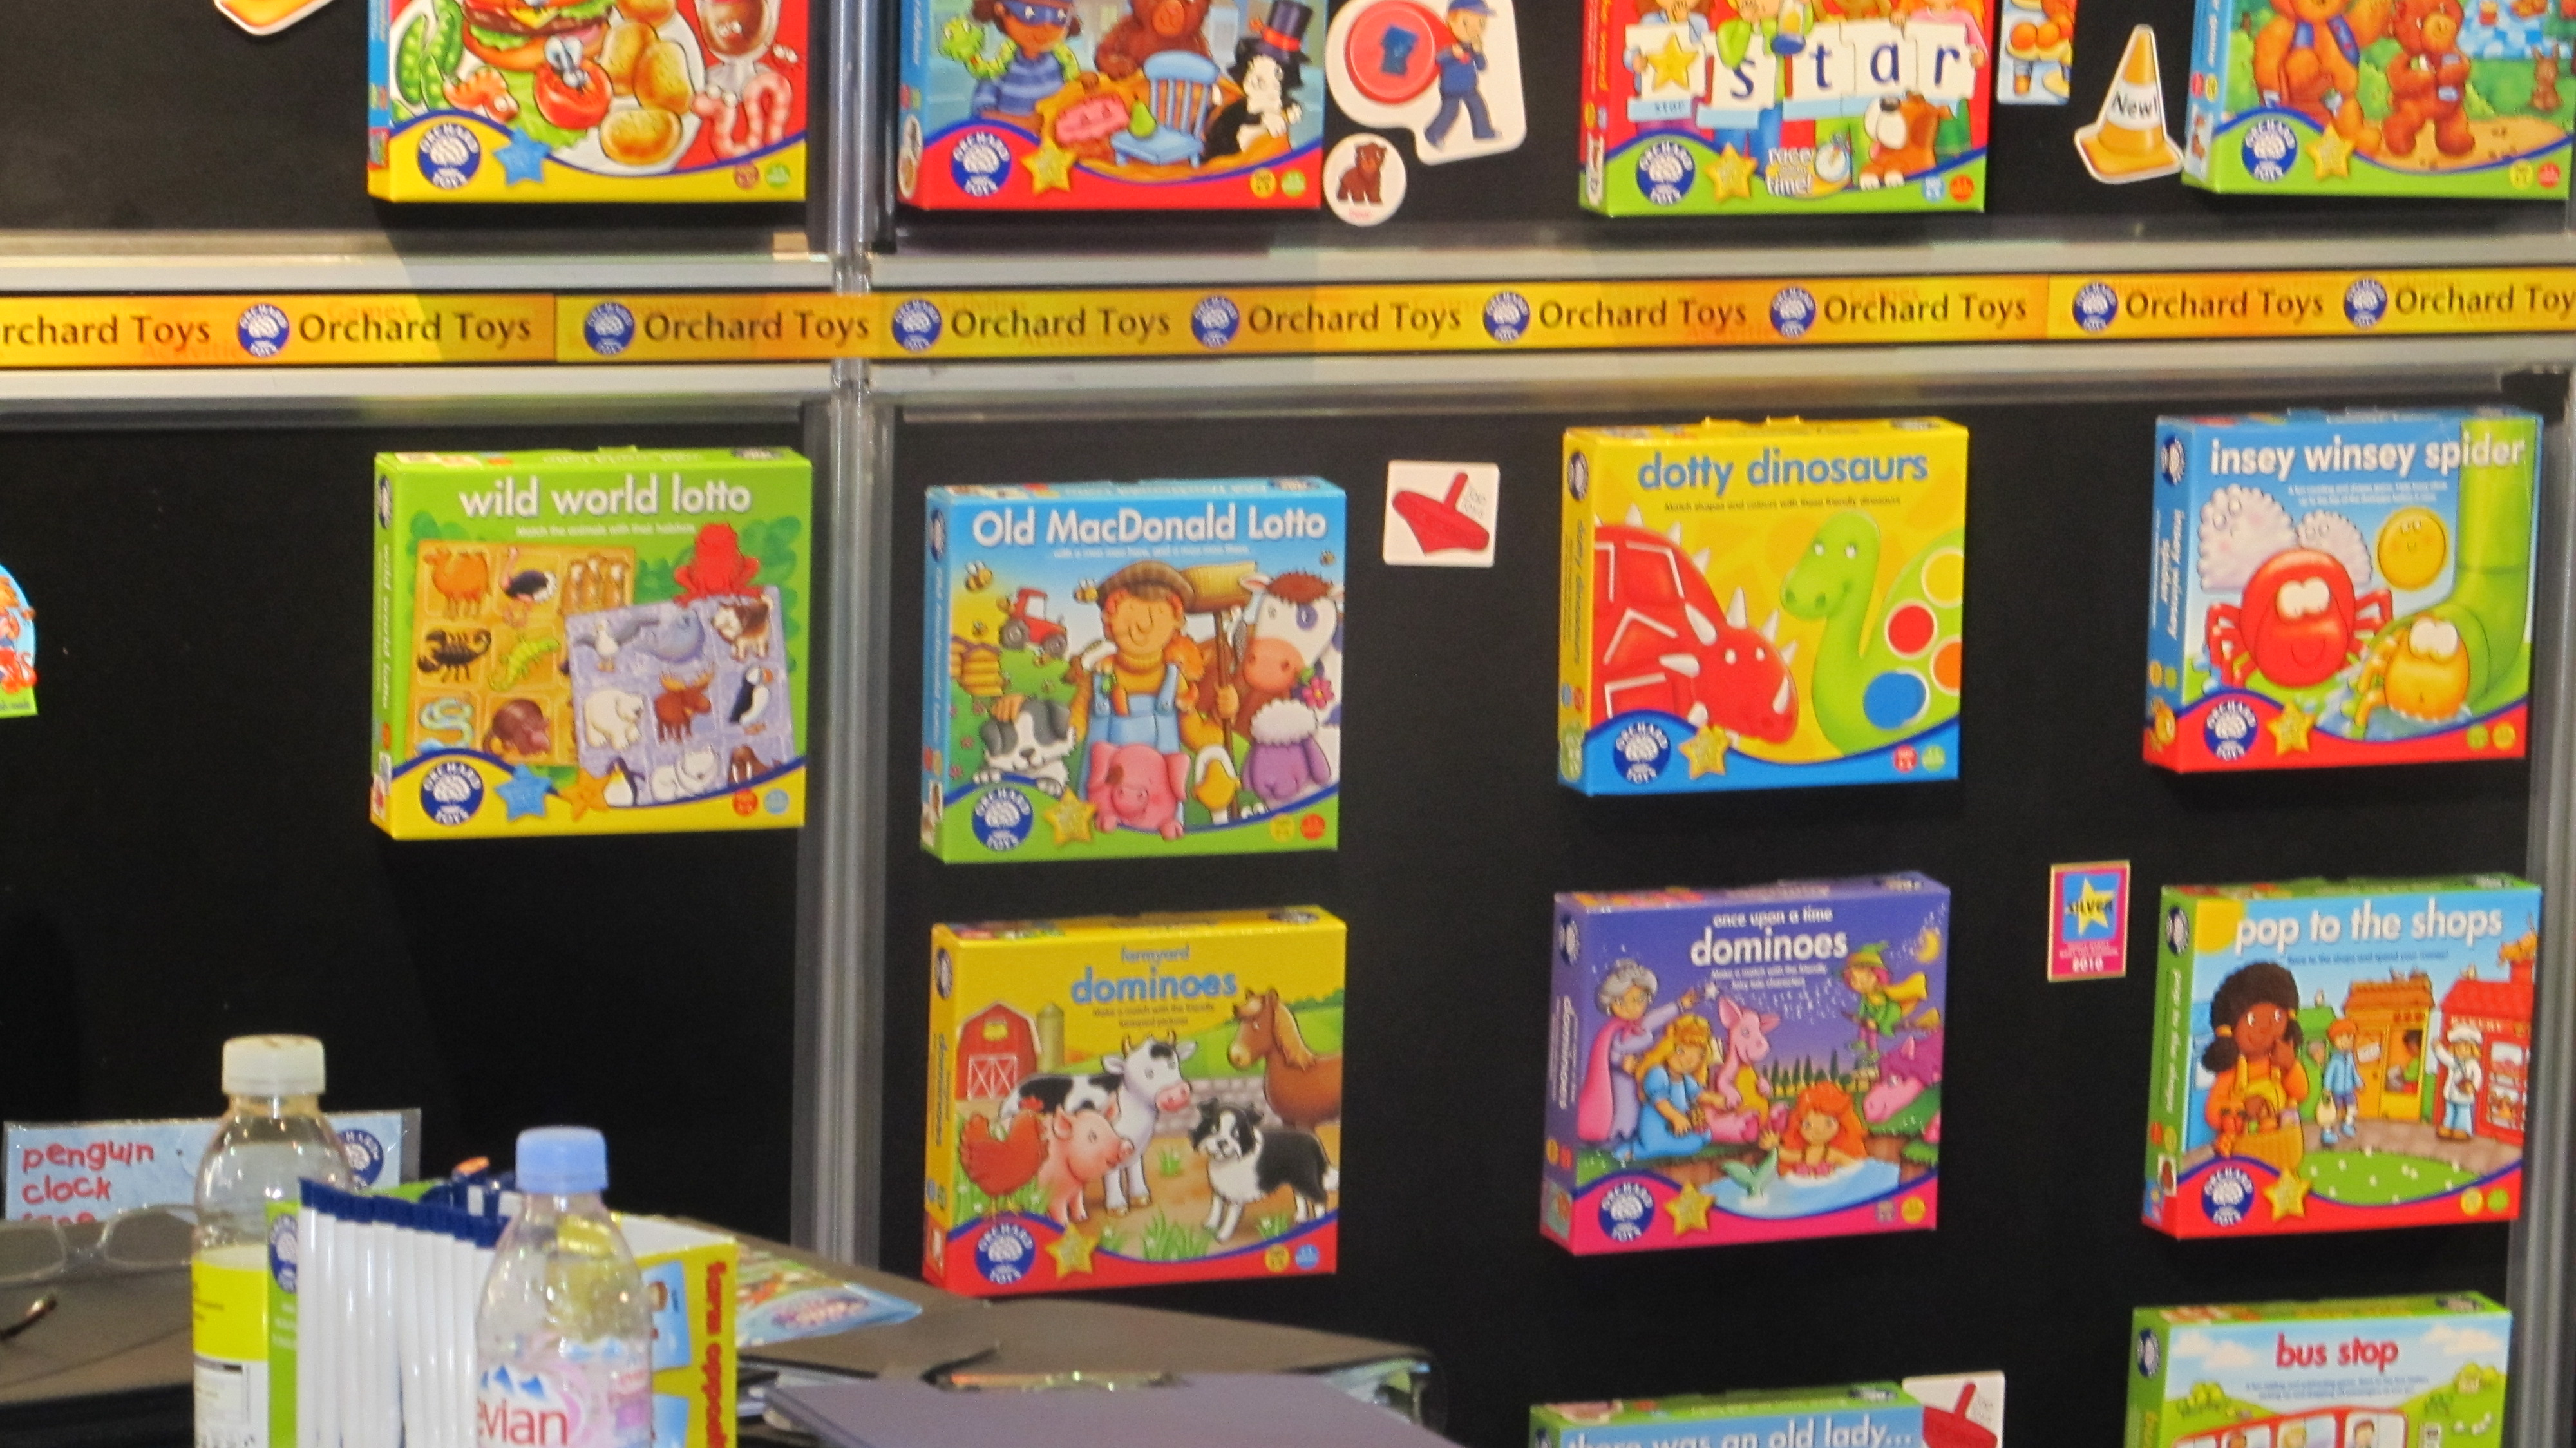 Autistic Toys For Boys : The london toy fair brings great toys for children on